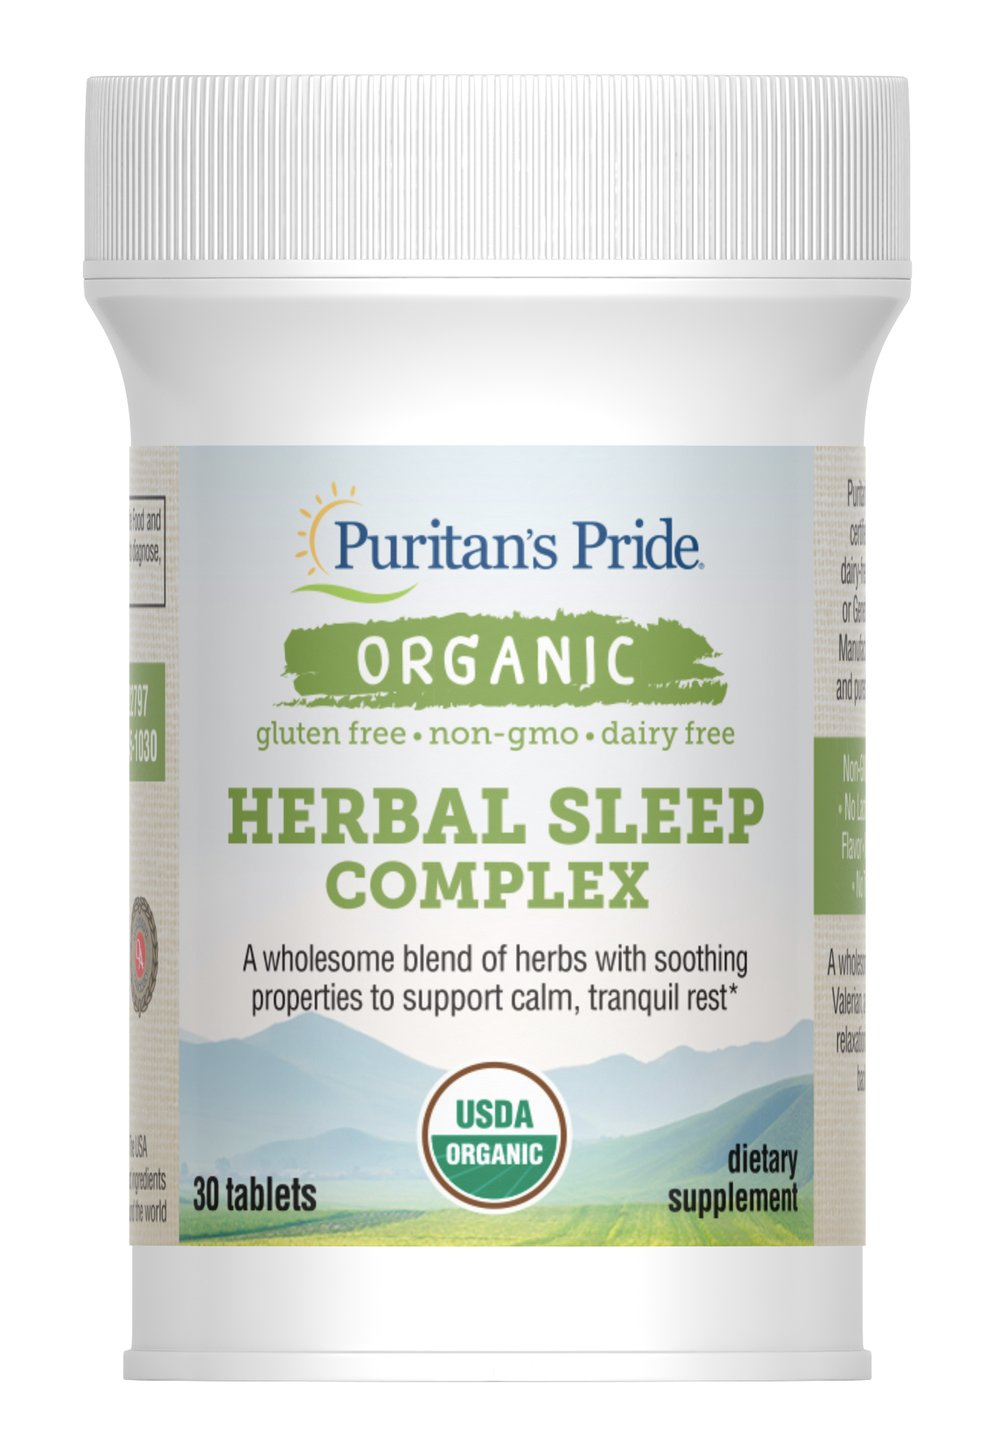 Organic Herbal Sleep Complex Thumbnail Alternate Bottle View